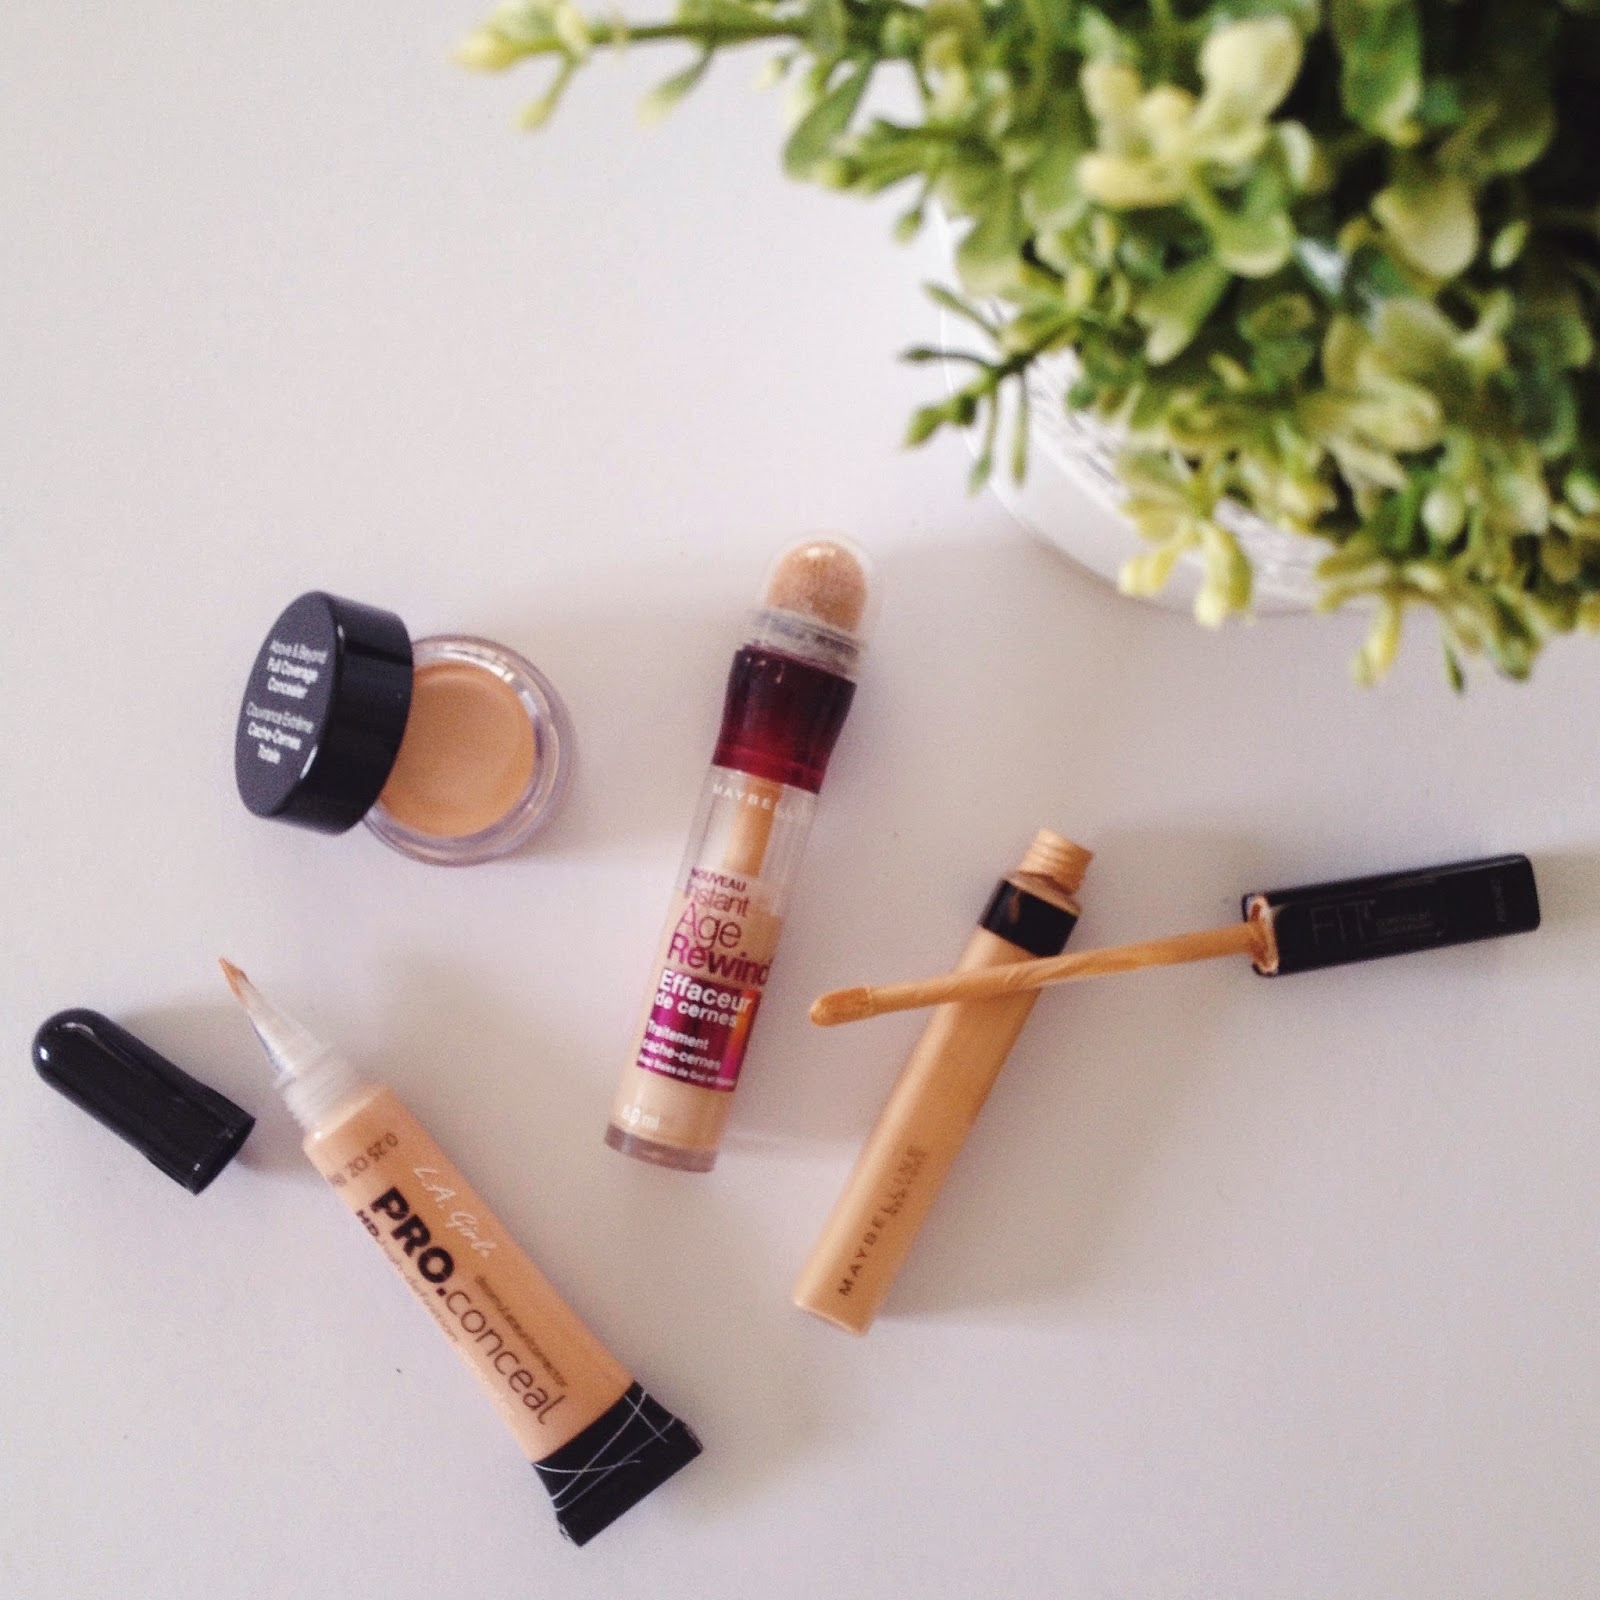 The Affordable Concealer Round Up Oniochalasia Maybelline Fit Me In Sand 2 Age Rewind Dark Circle Eraser 3 La Girl Pro Conceal Natural 4 Nyx Porcelain